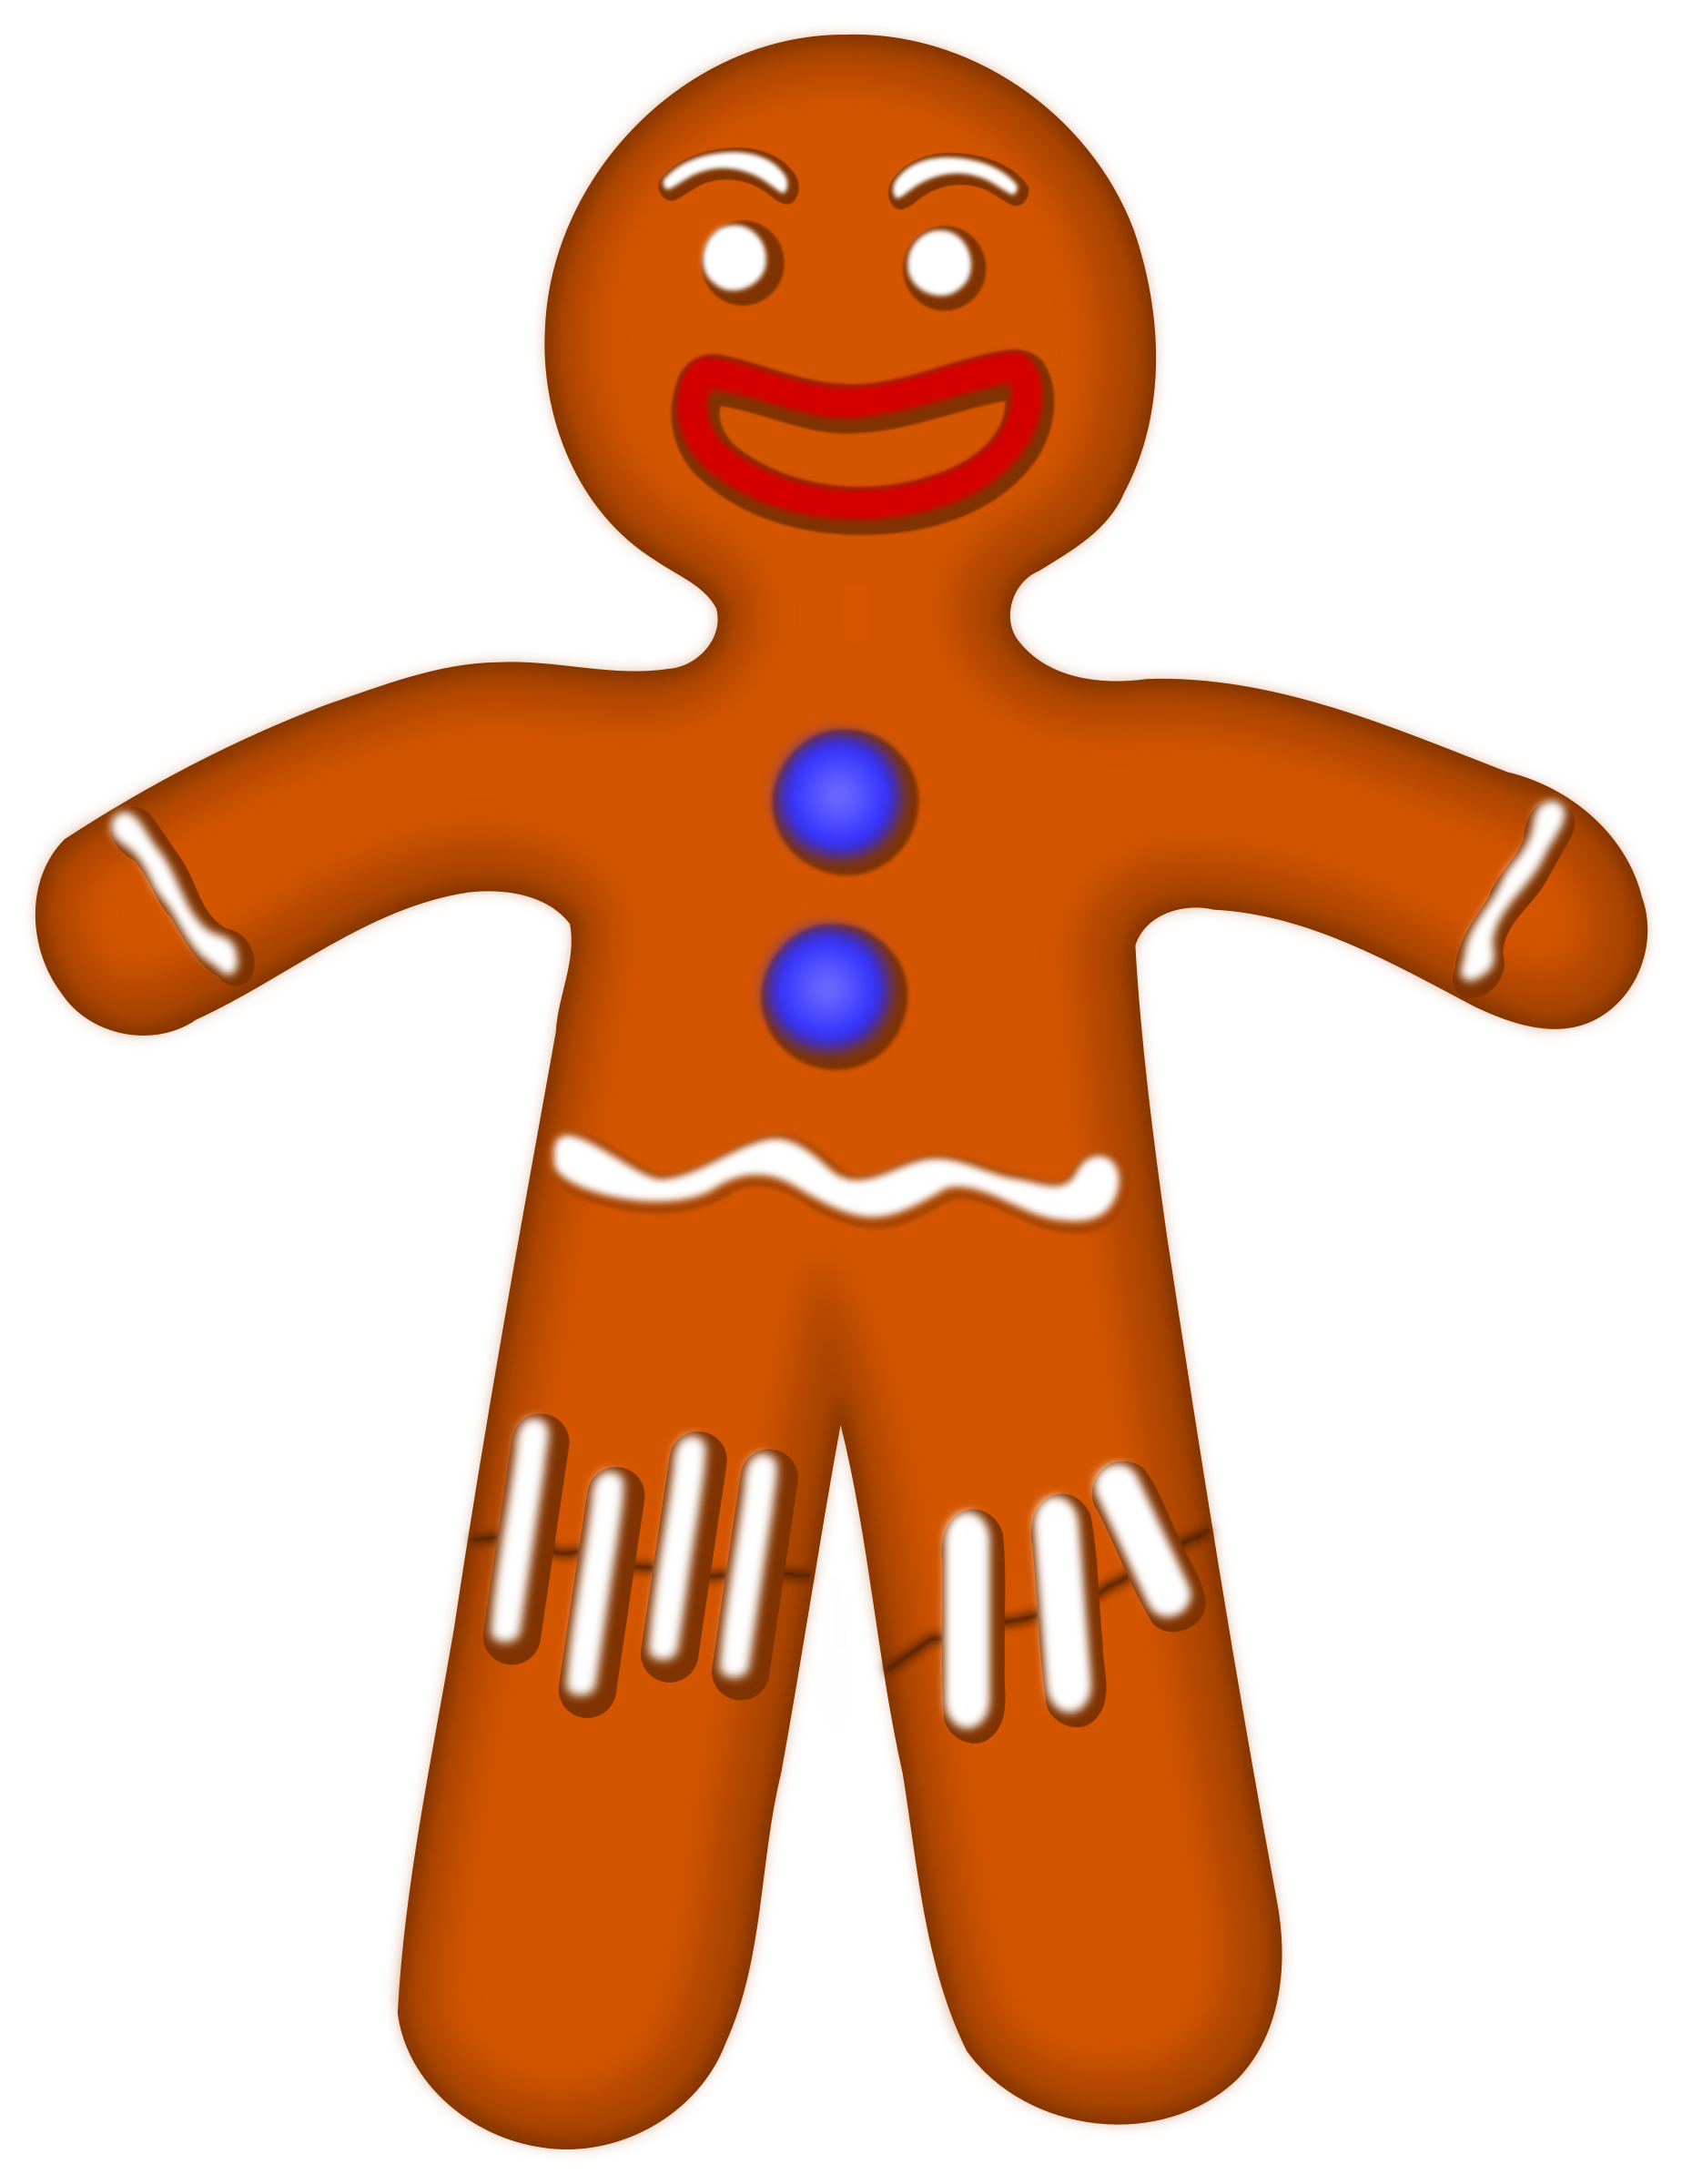 jpg library library Fresh Inspiration Gingerbread Man Clipart Sign Clip Art Image